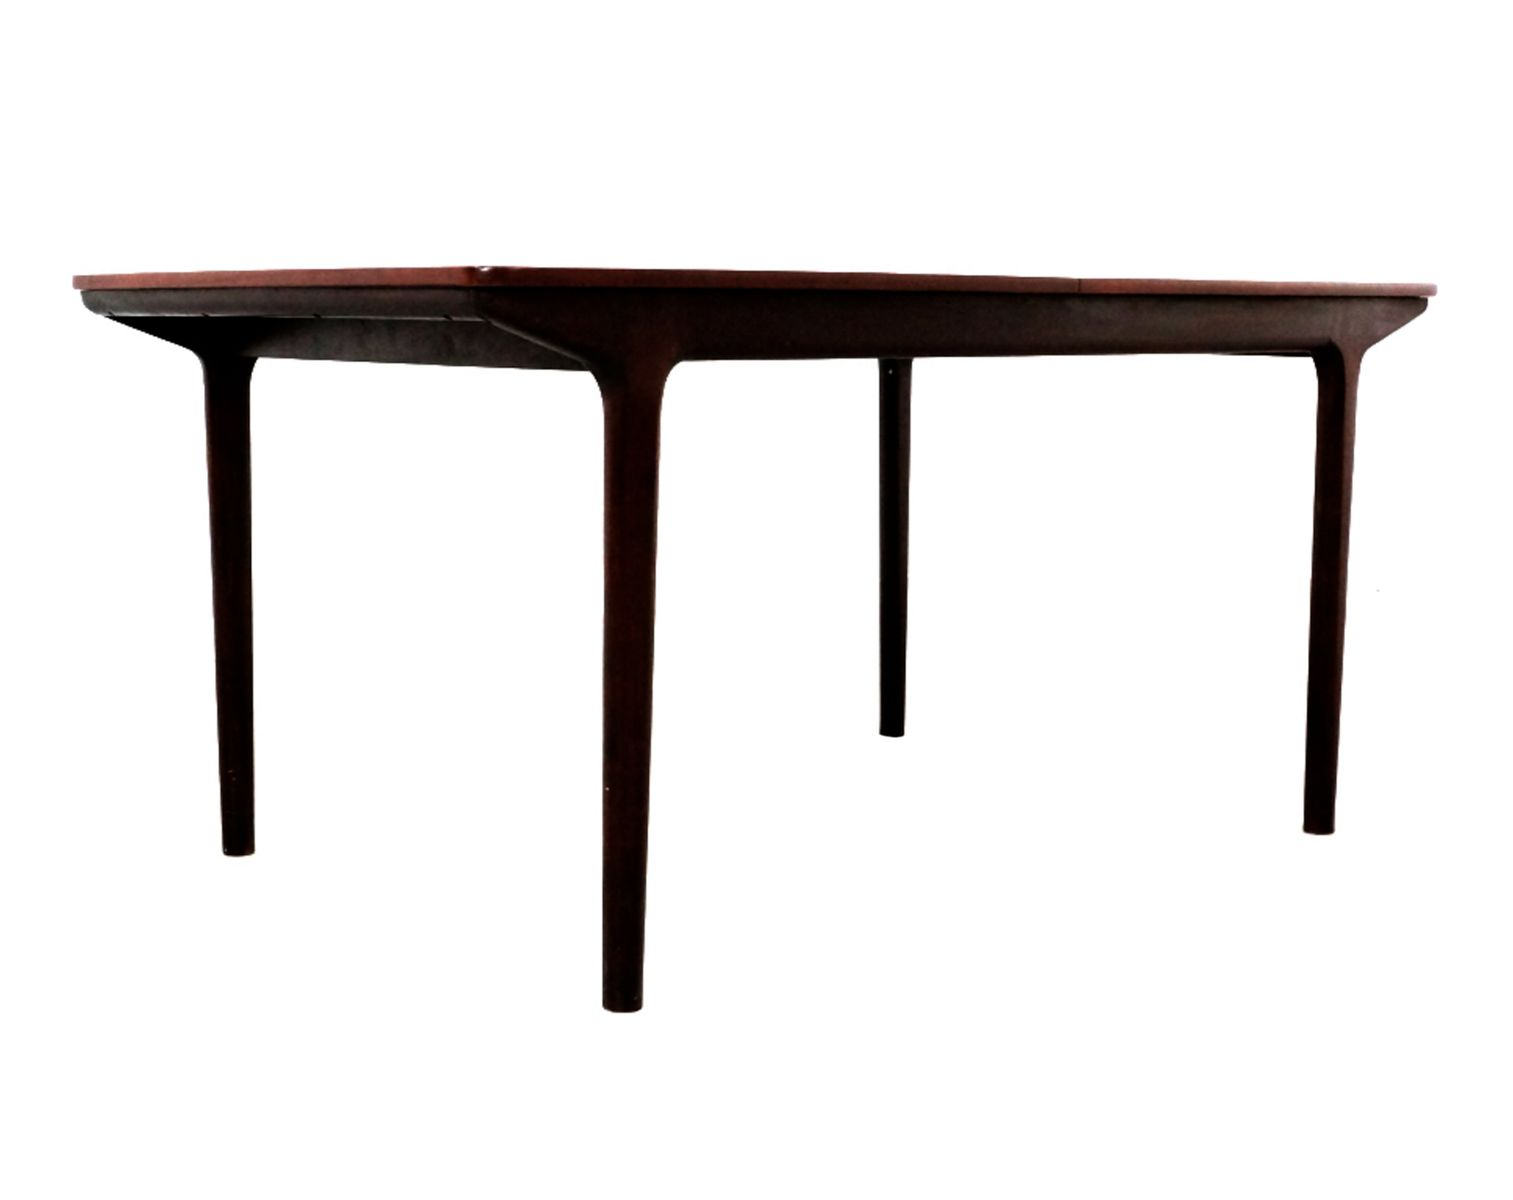 Table de salle manger 12 places mid century en for Table de salle a manger 12 places